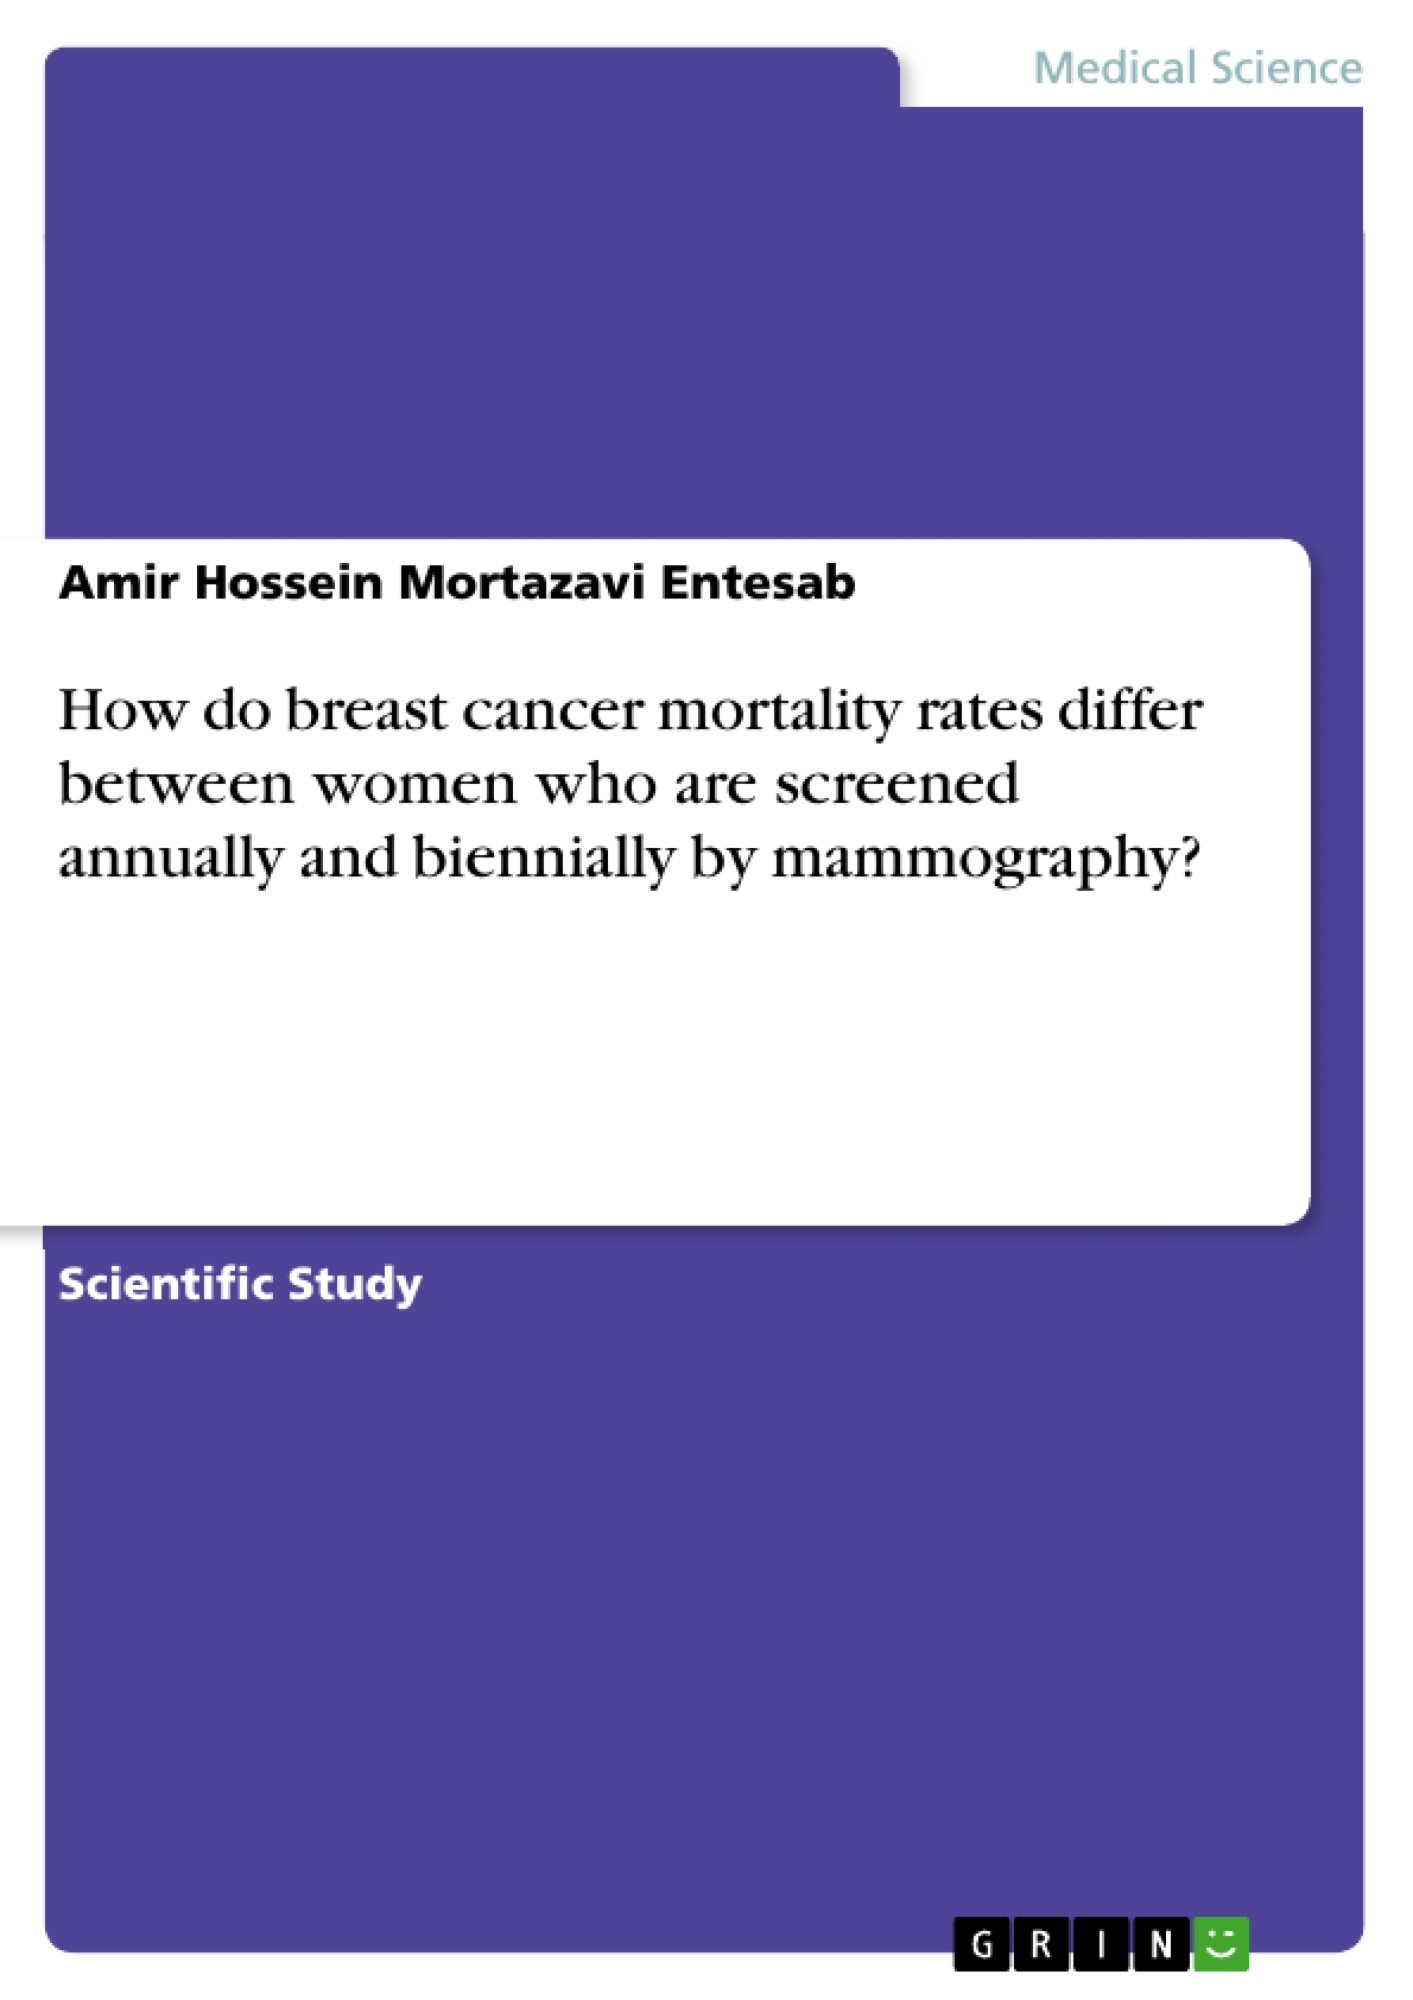 Title: How do breast cancer mortality rates differ between women who are screened annually and biennially by mammography?